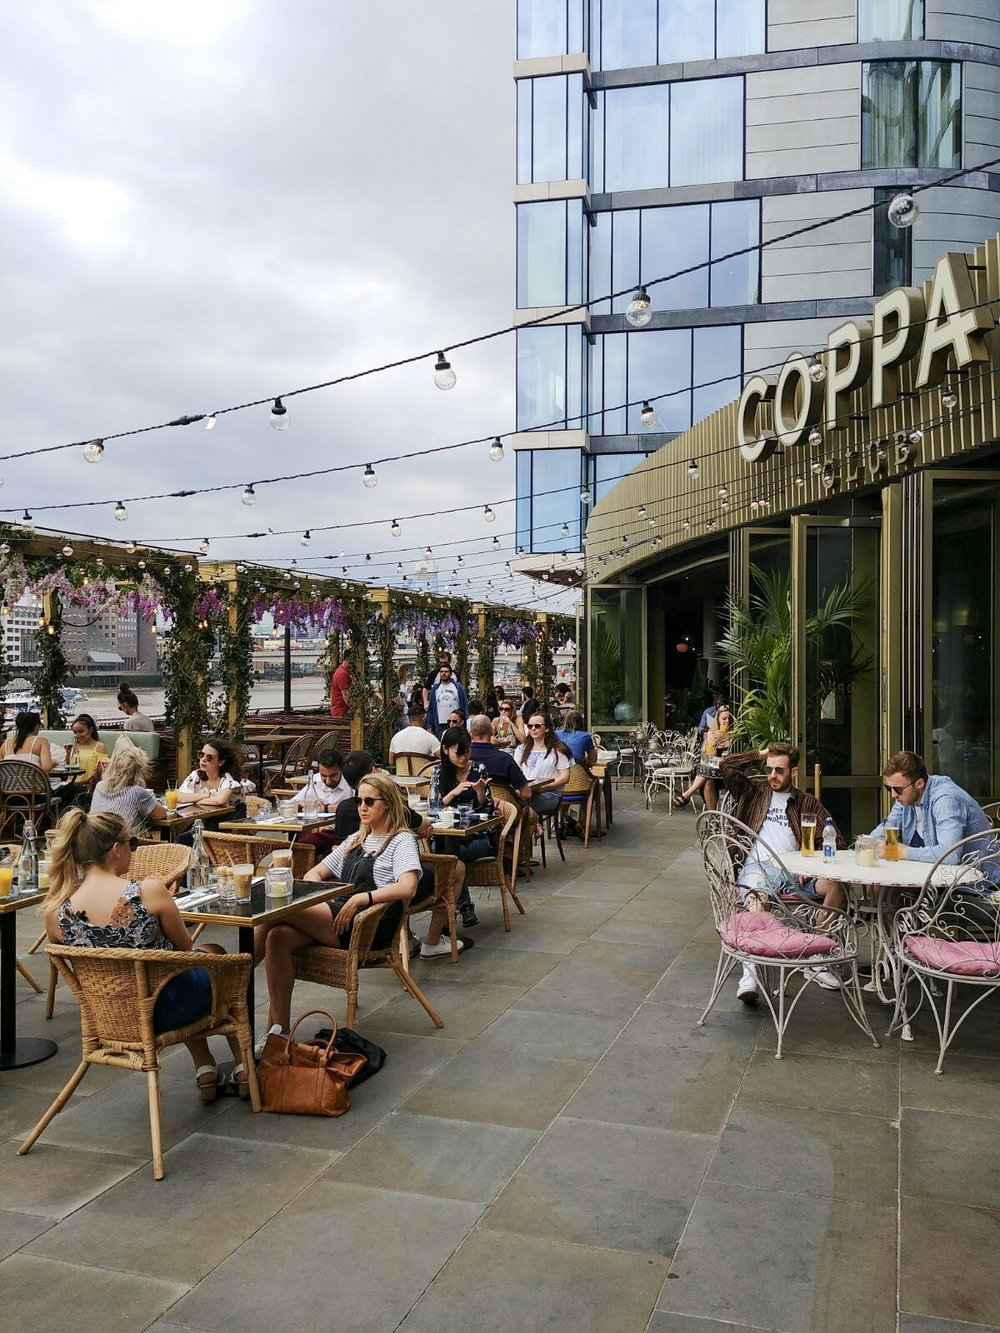 Coppa Club - Coppa Club is the place to brunch this summer, as the igloos have been replaced by cabanas decorated with wisteria. This must be the prettiest brunch spot in London.